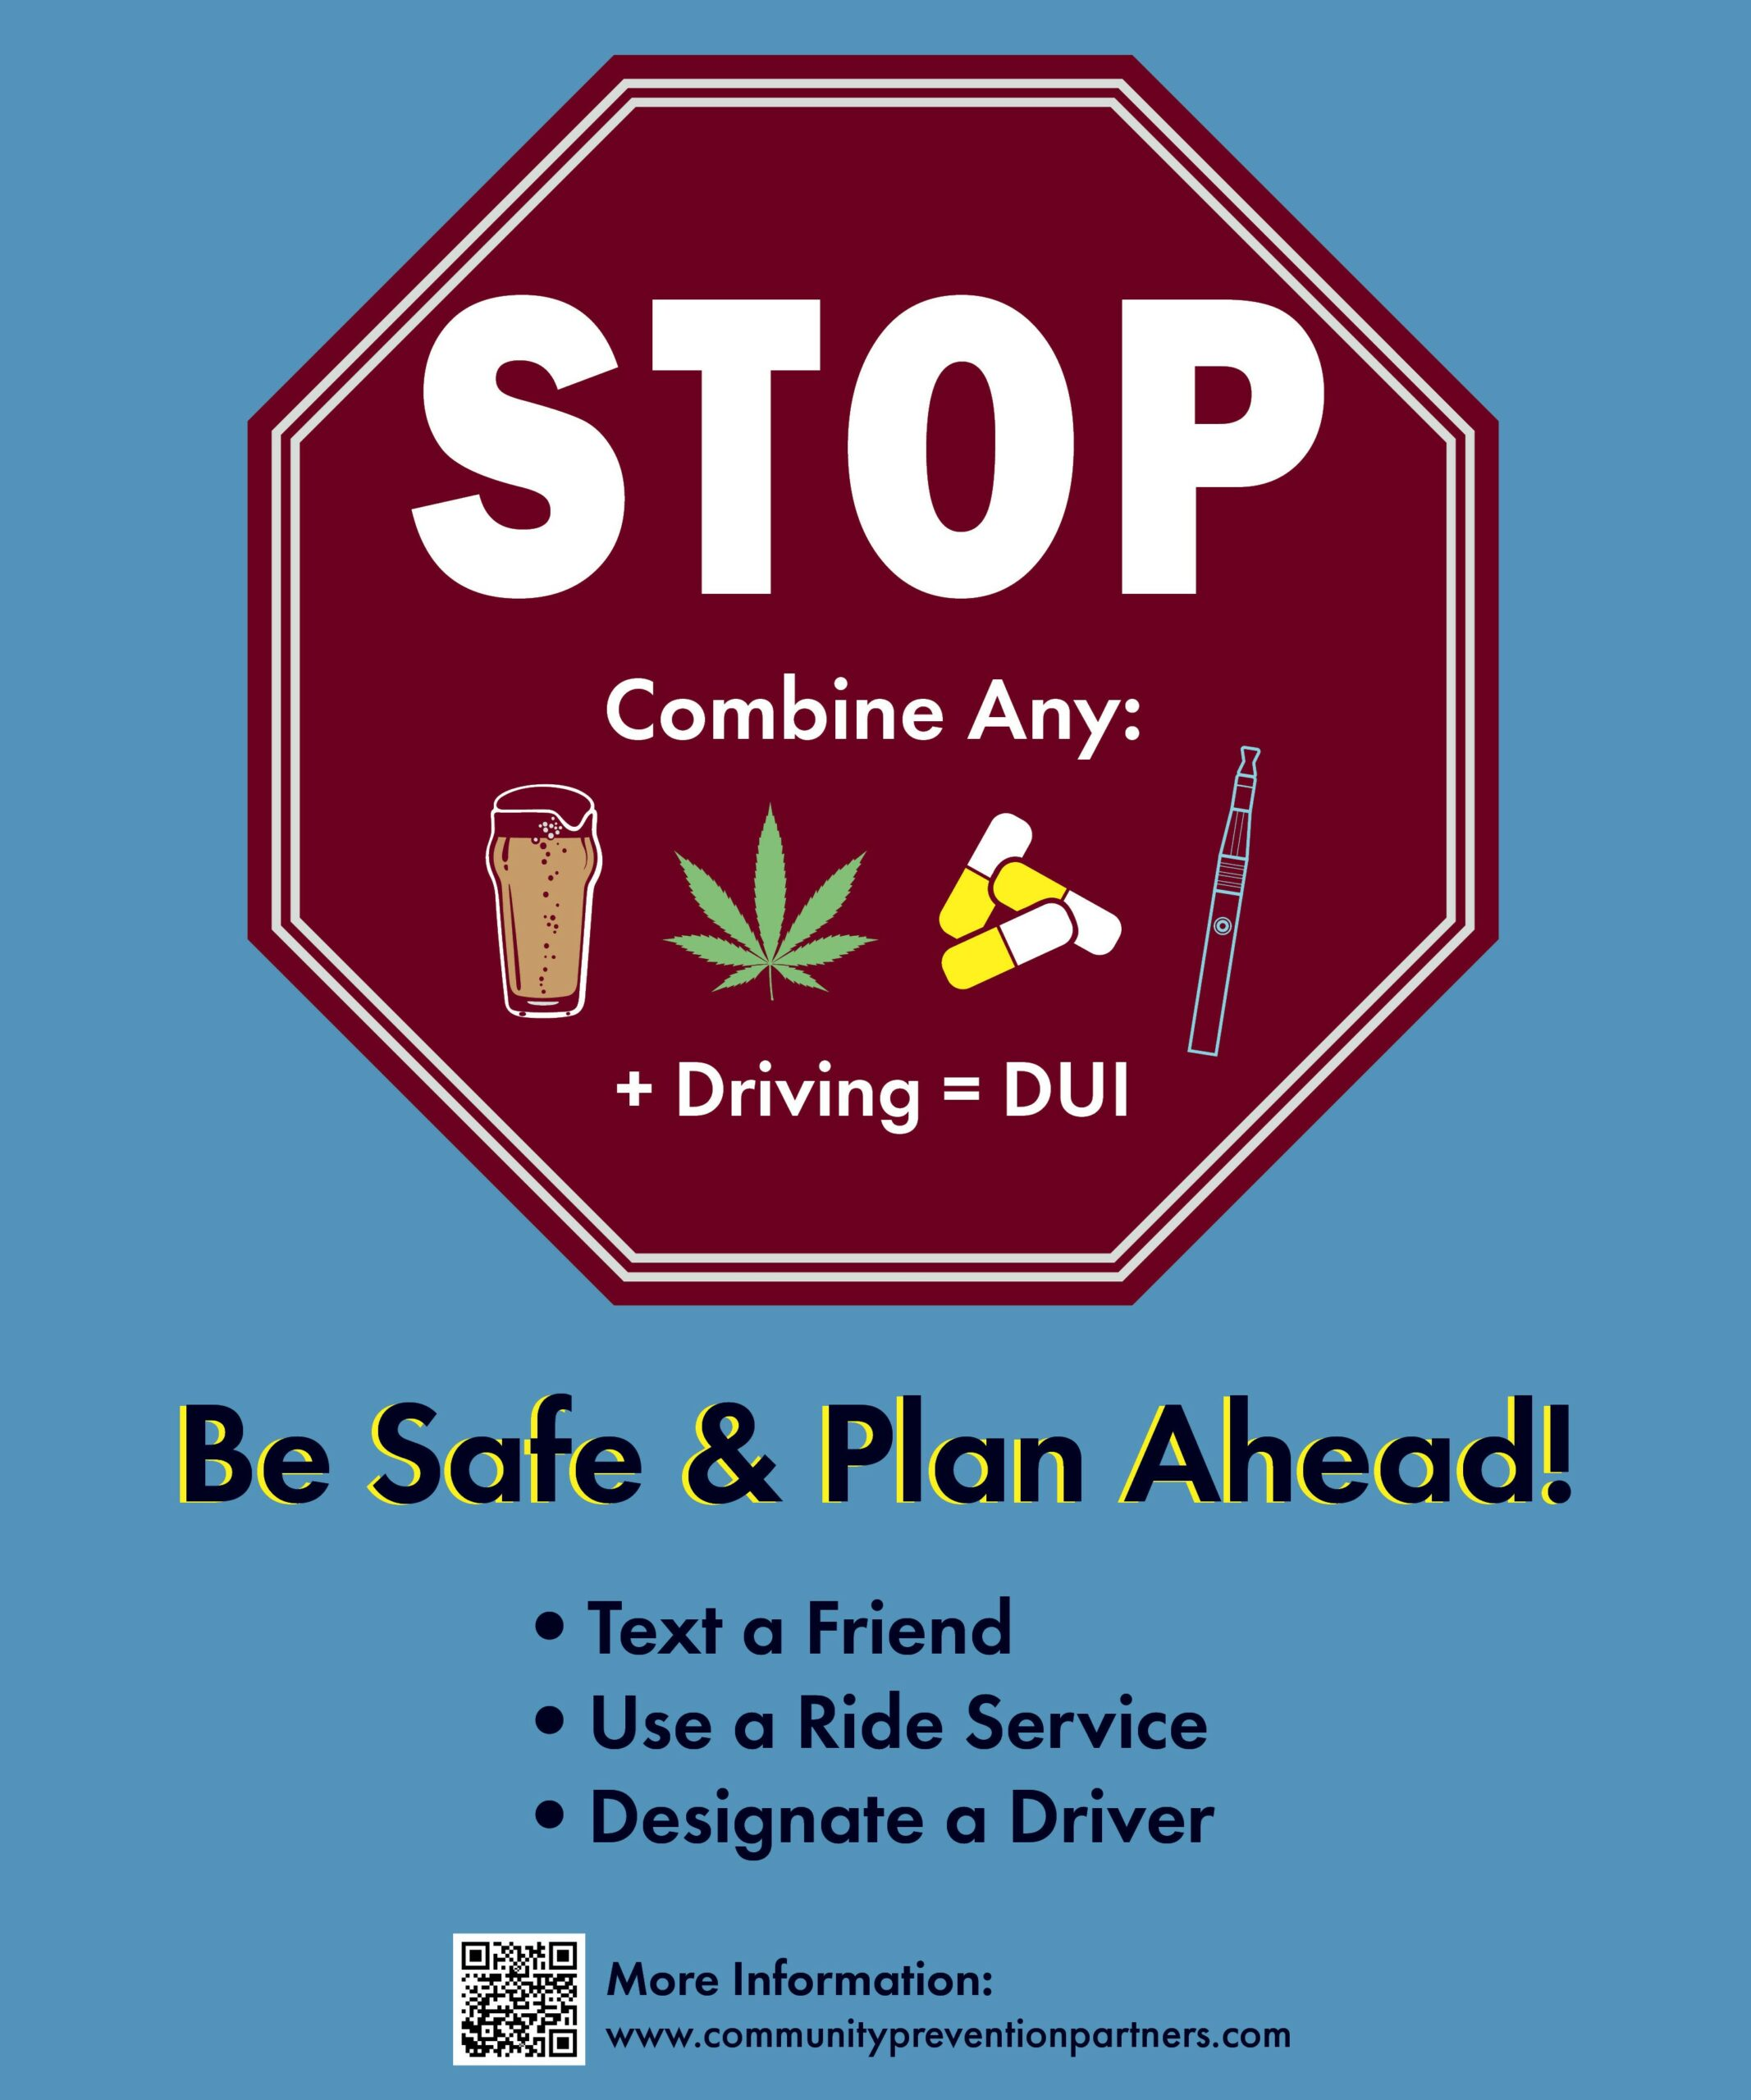 Image of a stop sign with Be Safe & Plan Ahead